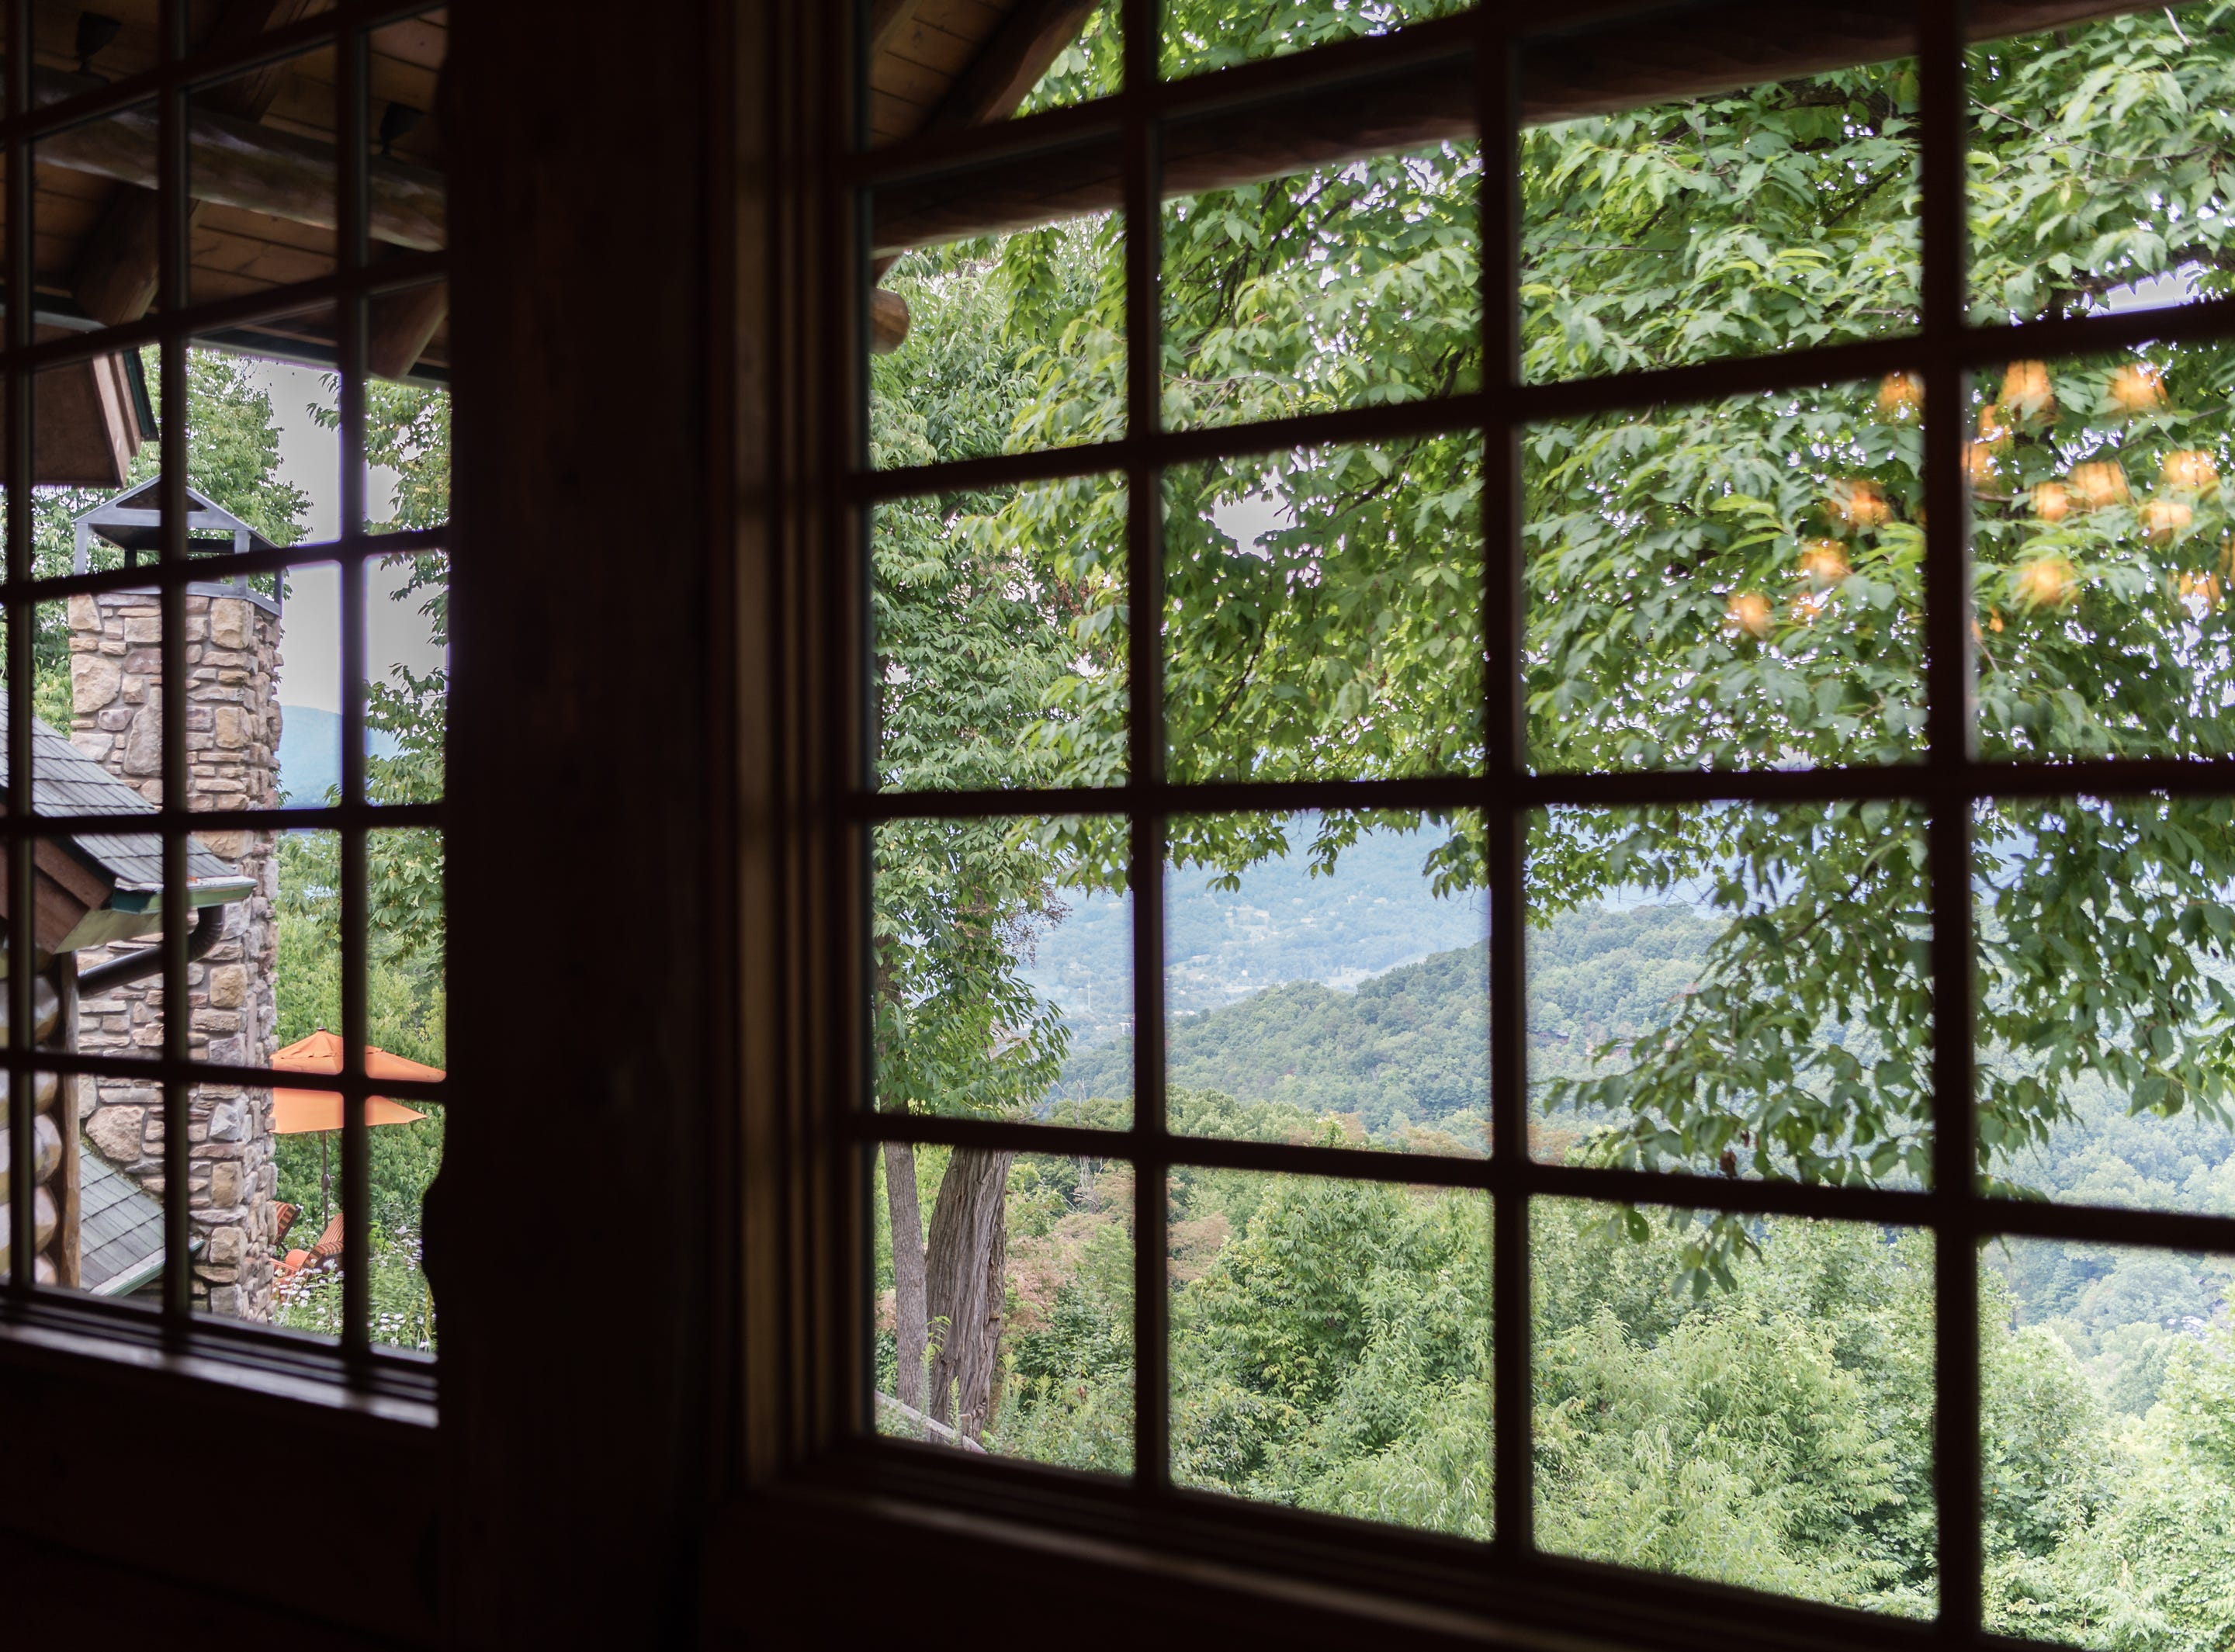 The view from the third floor of Dan and Belle Fangmeyer's log cabin in Waynesville.